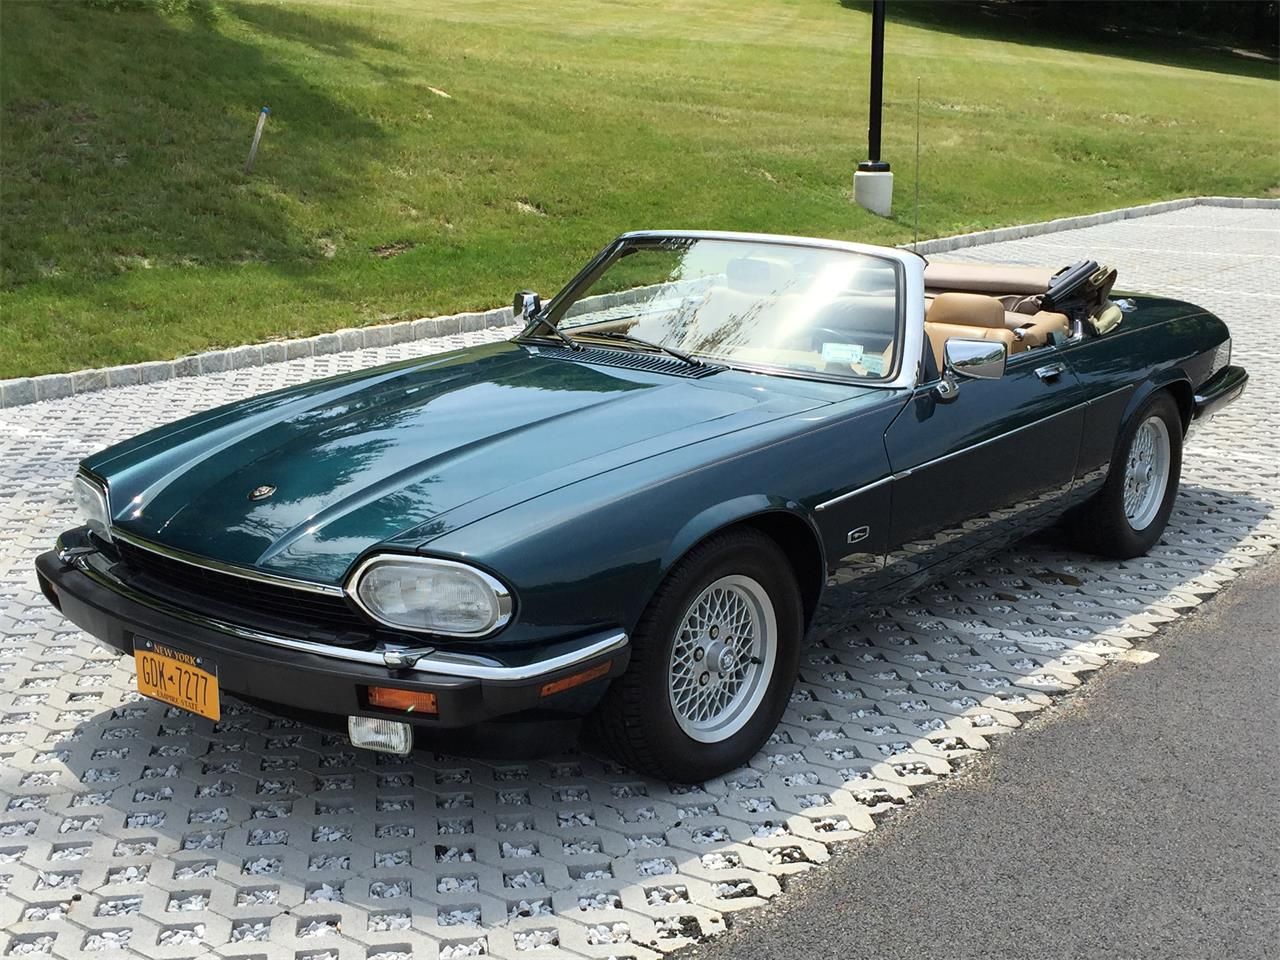 Large Picture of '92 XJS located in New York - $12,000.00 Offered by a Private Seller - EVKT